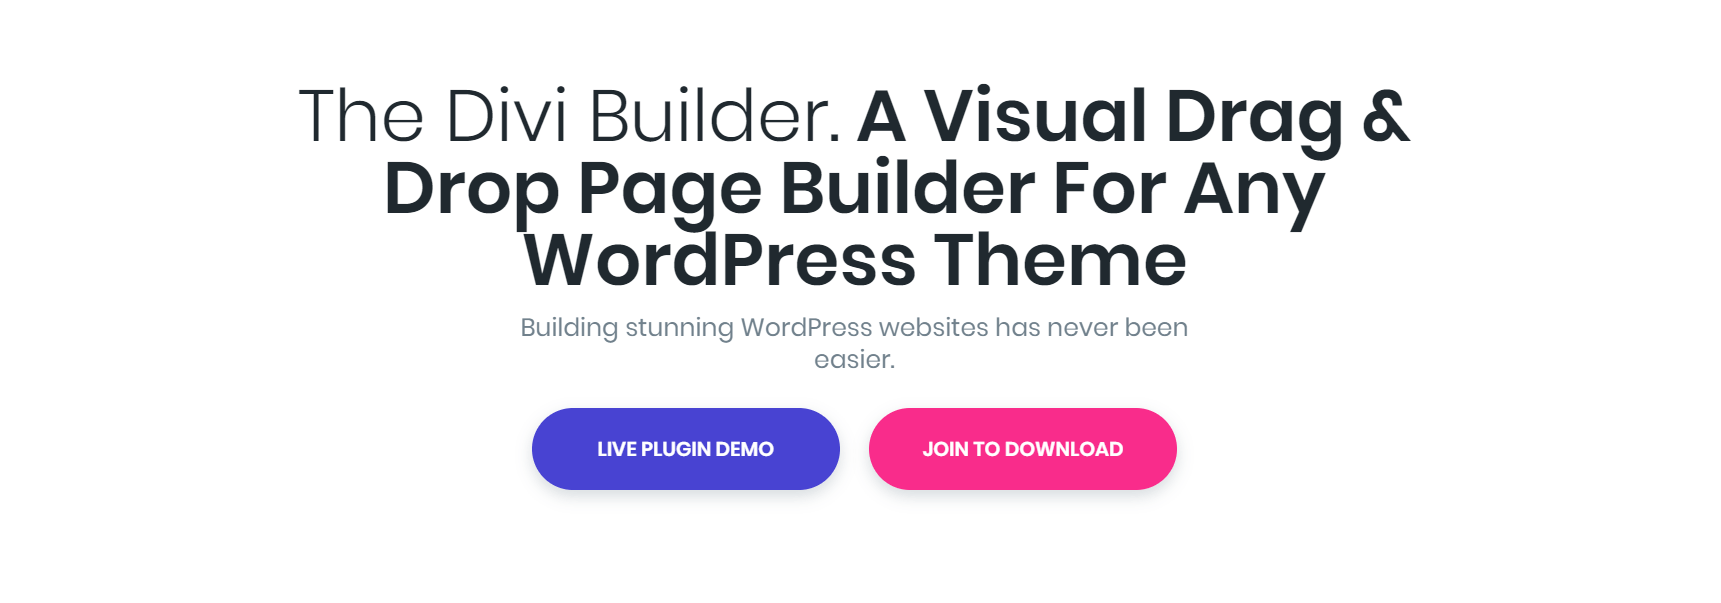 O site Divi Builder.